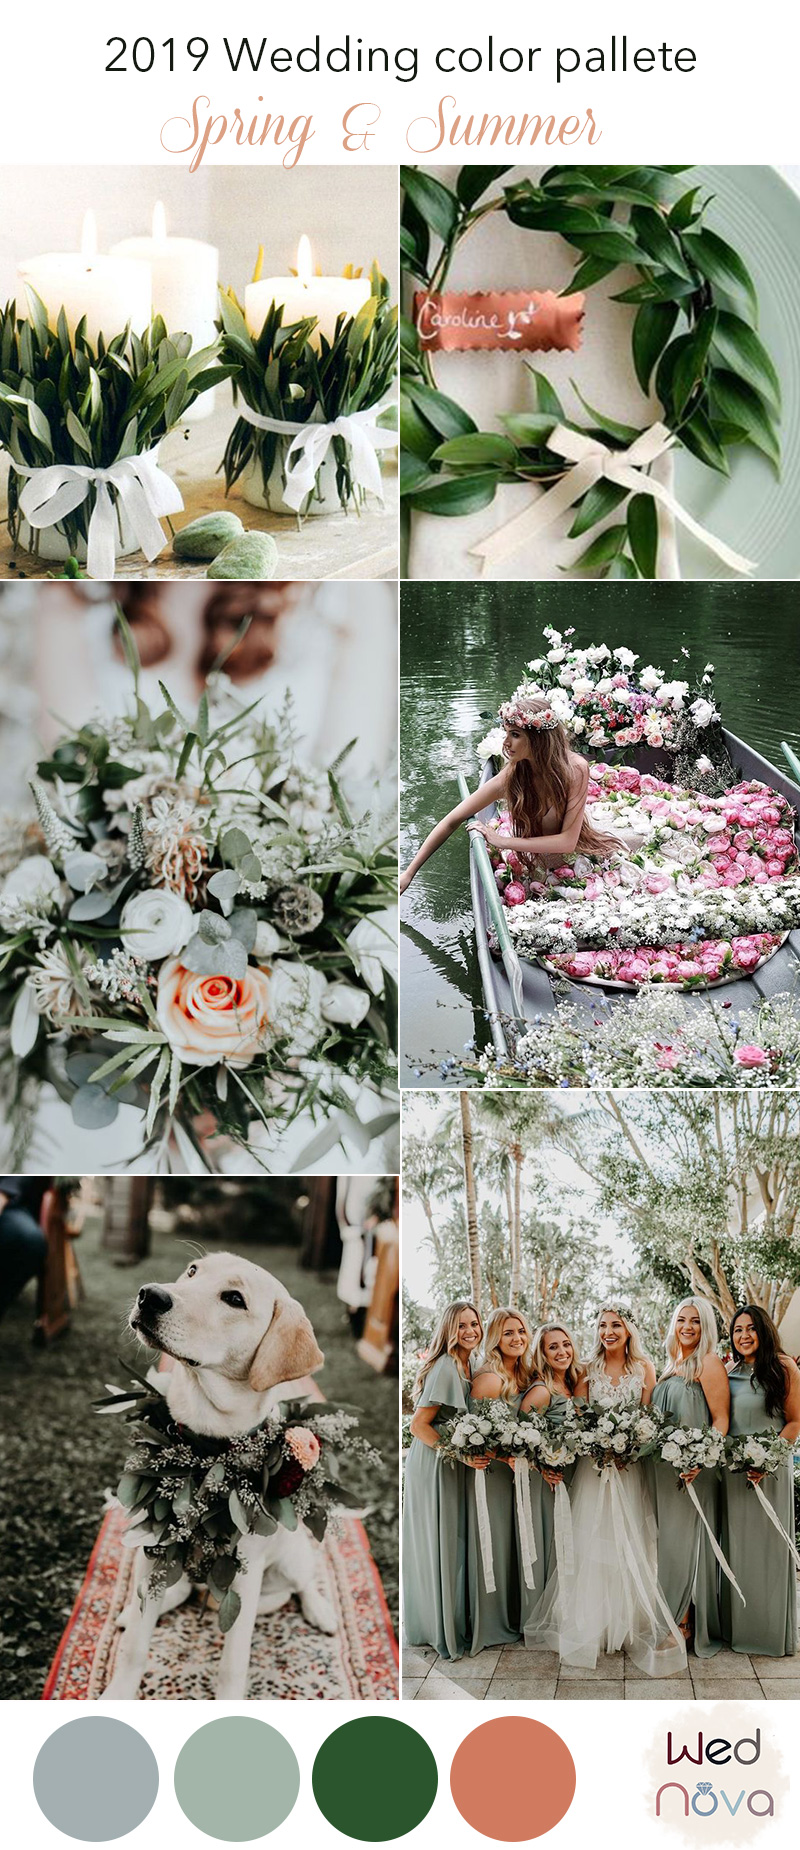 Spring Wedding Colors.12 Wedding Color Palettes That Are Perfect For Spring Wednova Blog